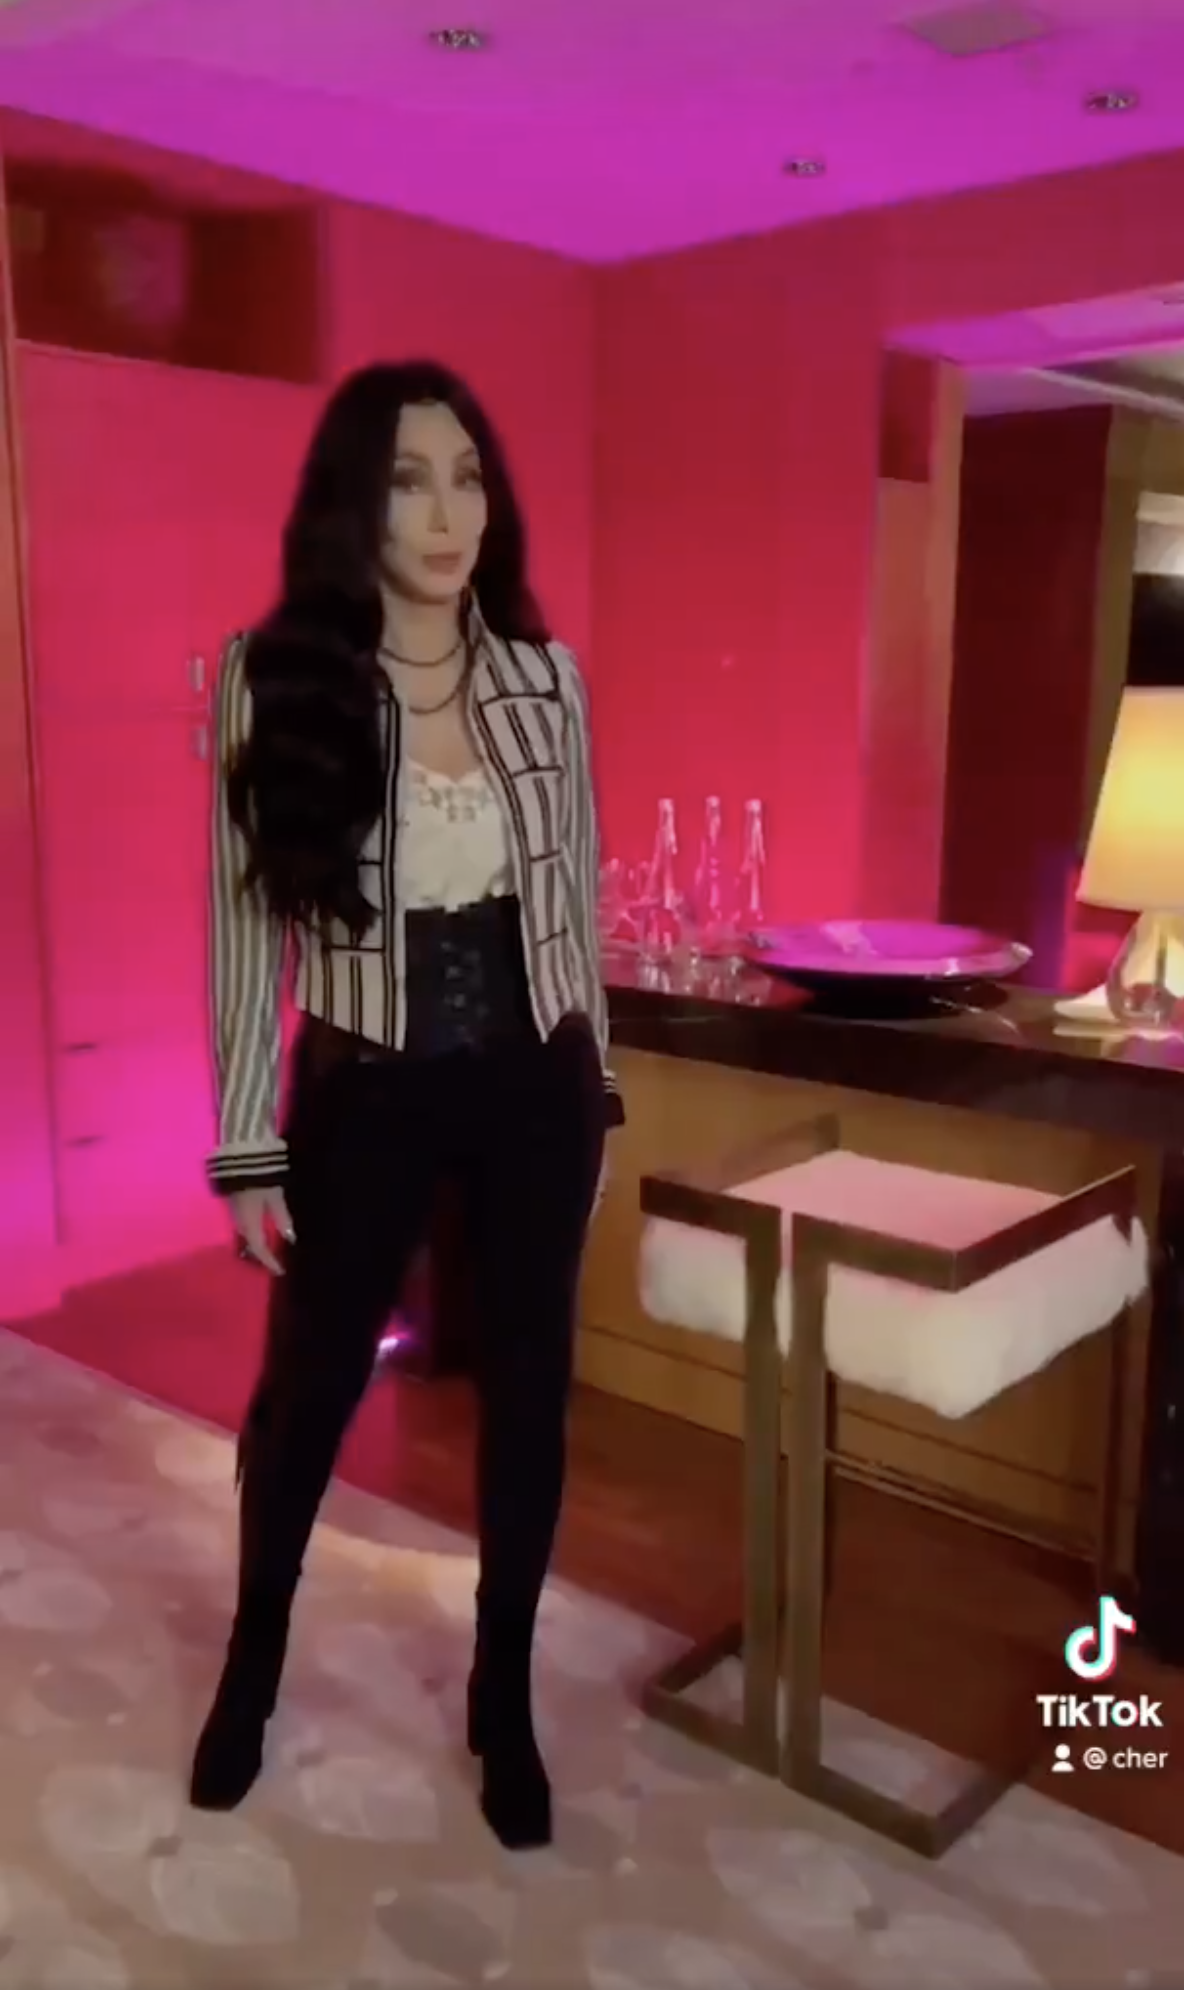 Cher appears as a brunette in her first TikTok video